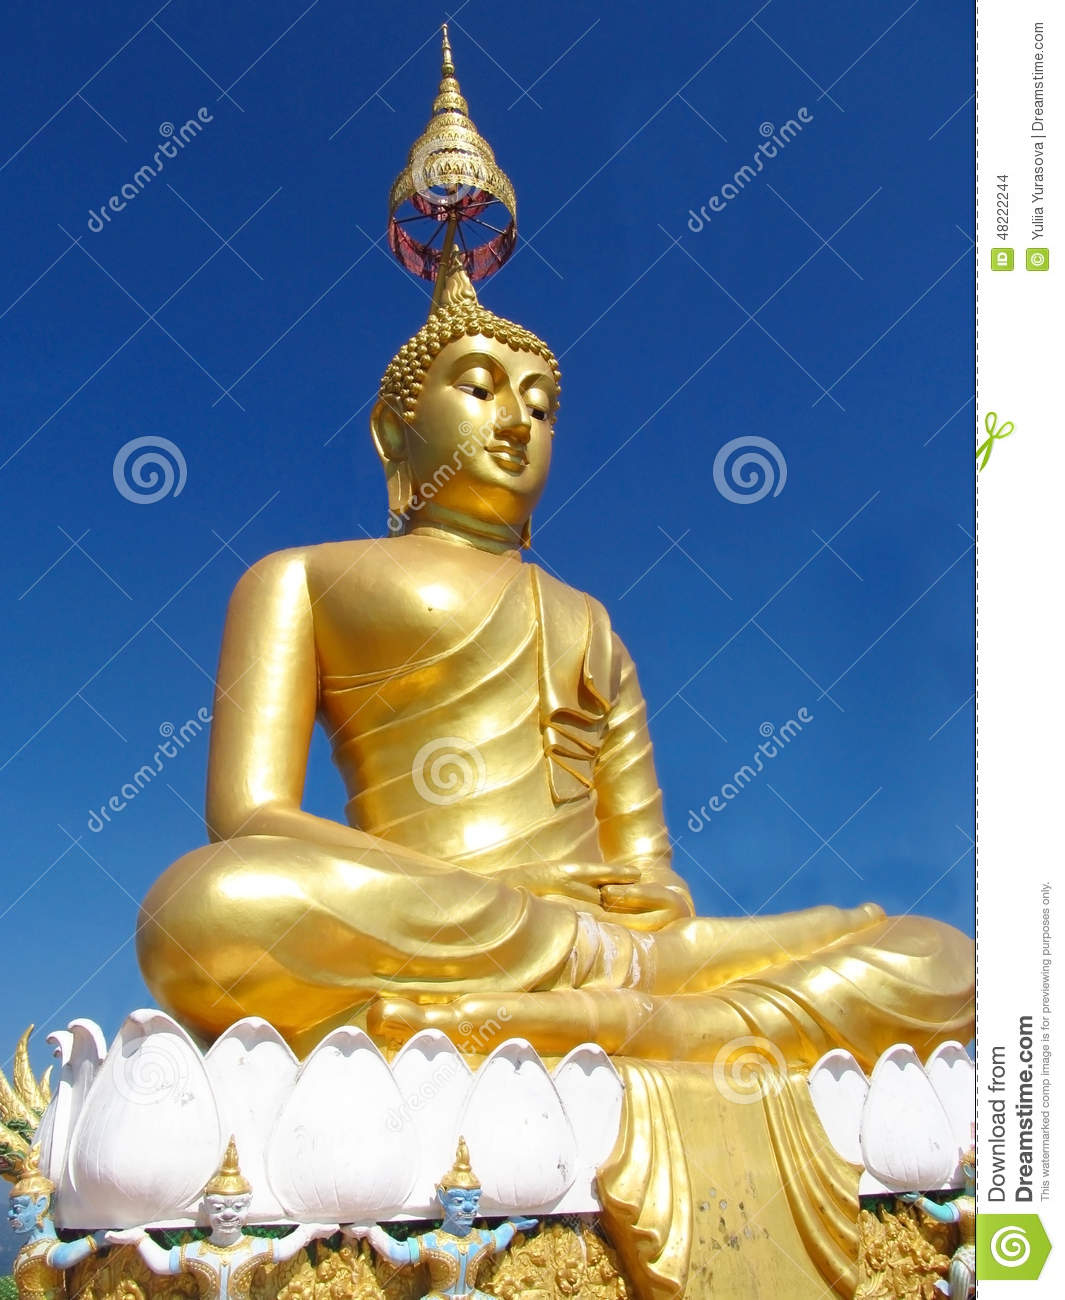 Gold colour Buddha statue in Buddhist temple